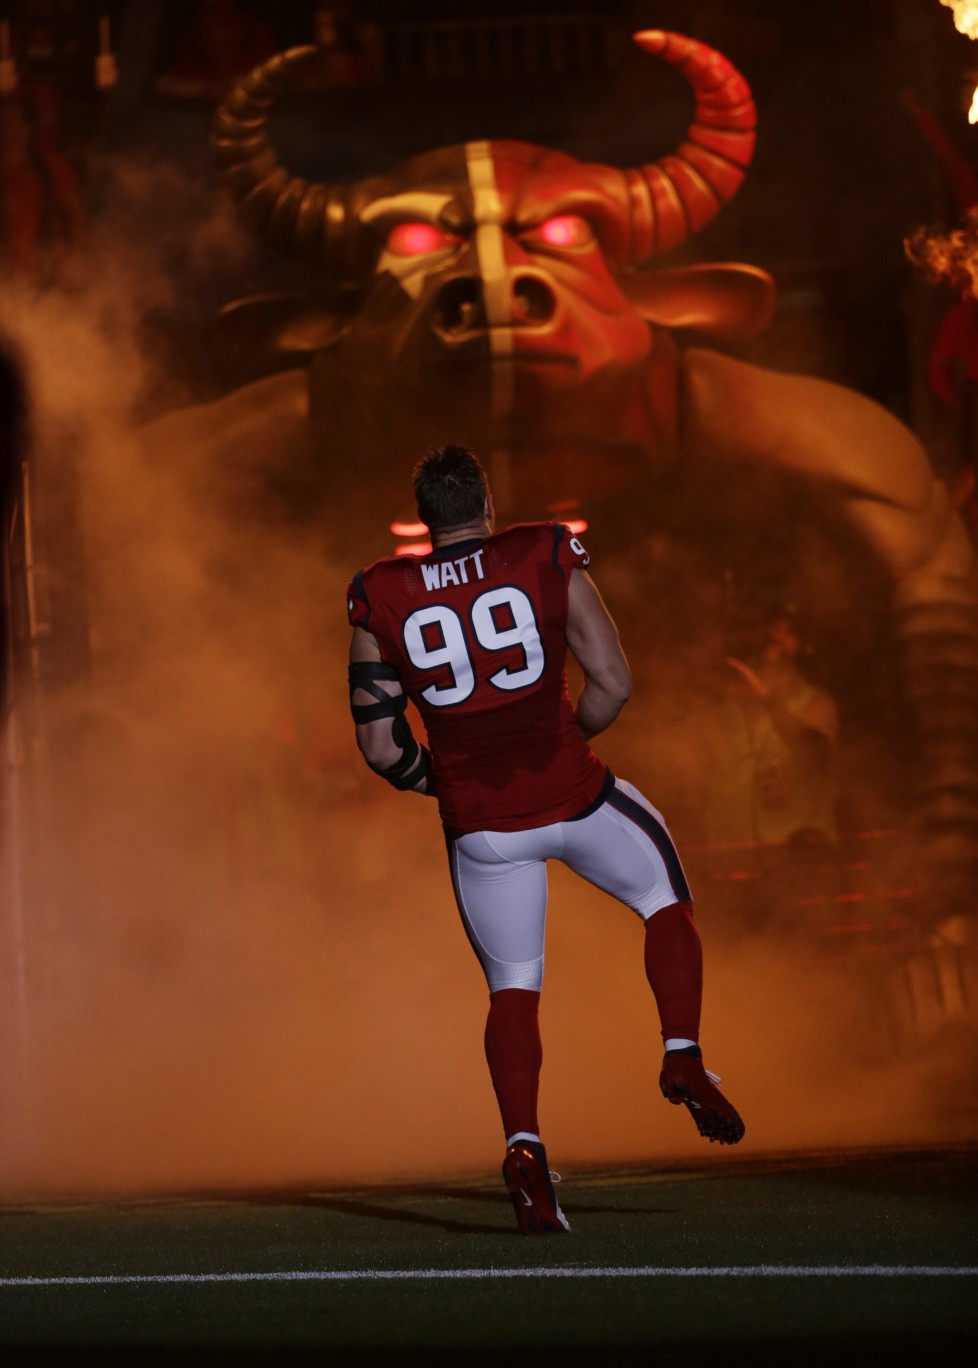 Houston Texans defensive end J.J. Watt (99) spins as he runs out of the tunnel before an NFL football game against the New England Patriots, Sunday, Dec. 13, 2015, in Houston. (AP Photo/David J. Phillip)